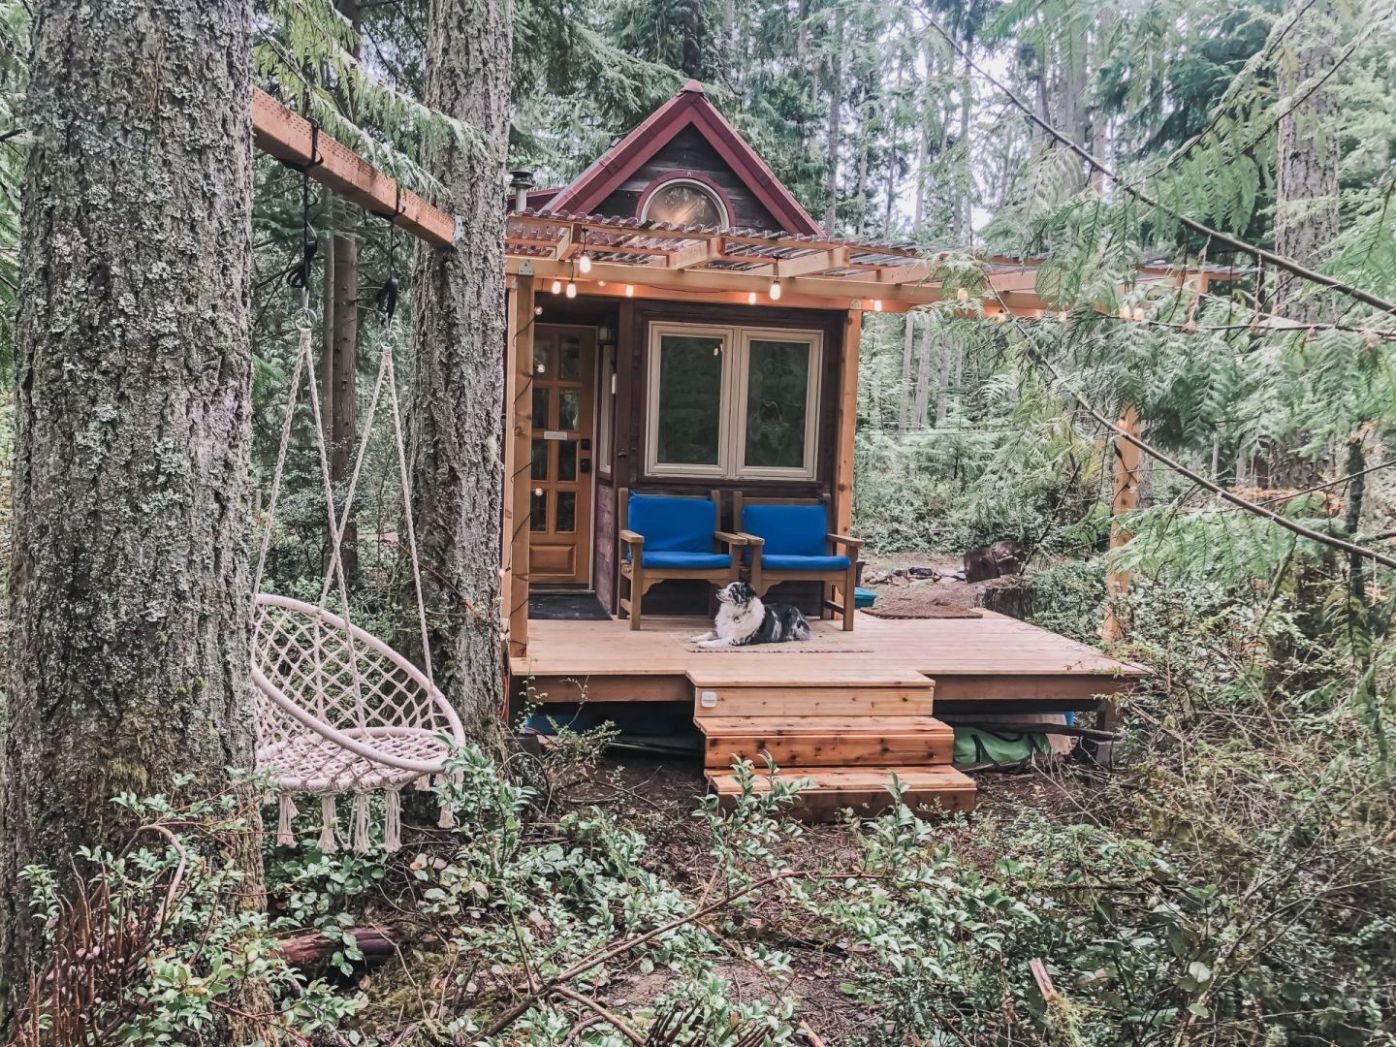 My New Tiny House Porch was Built for $10,10 in a Wooded Oasis